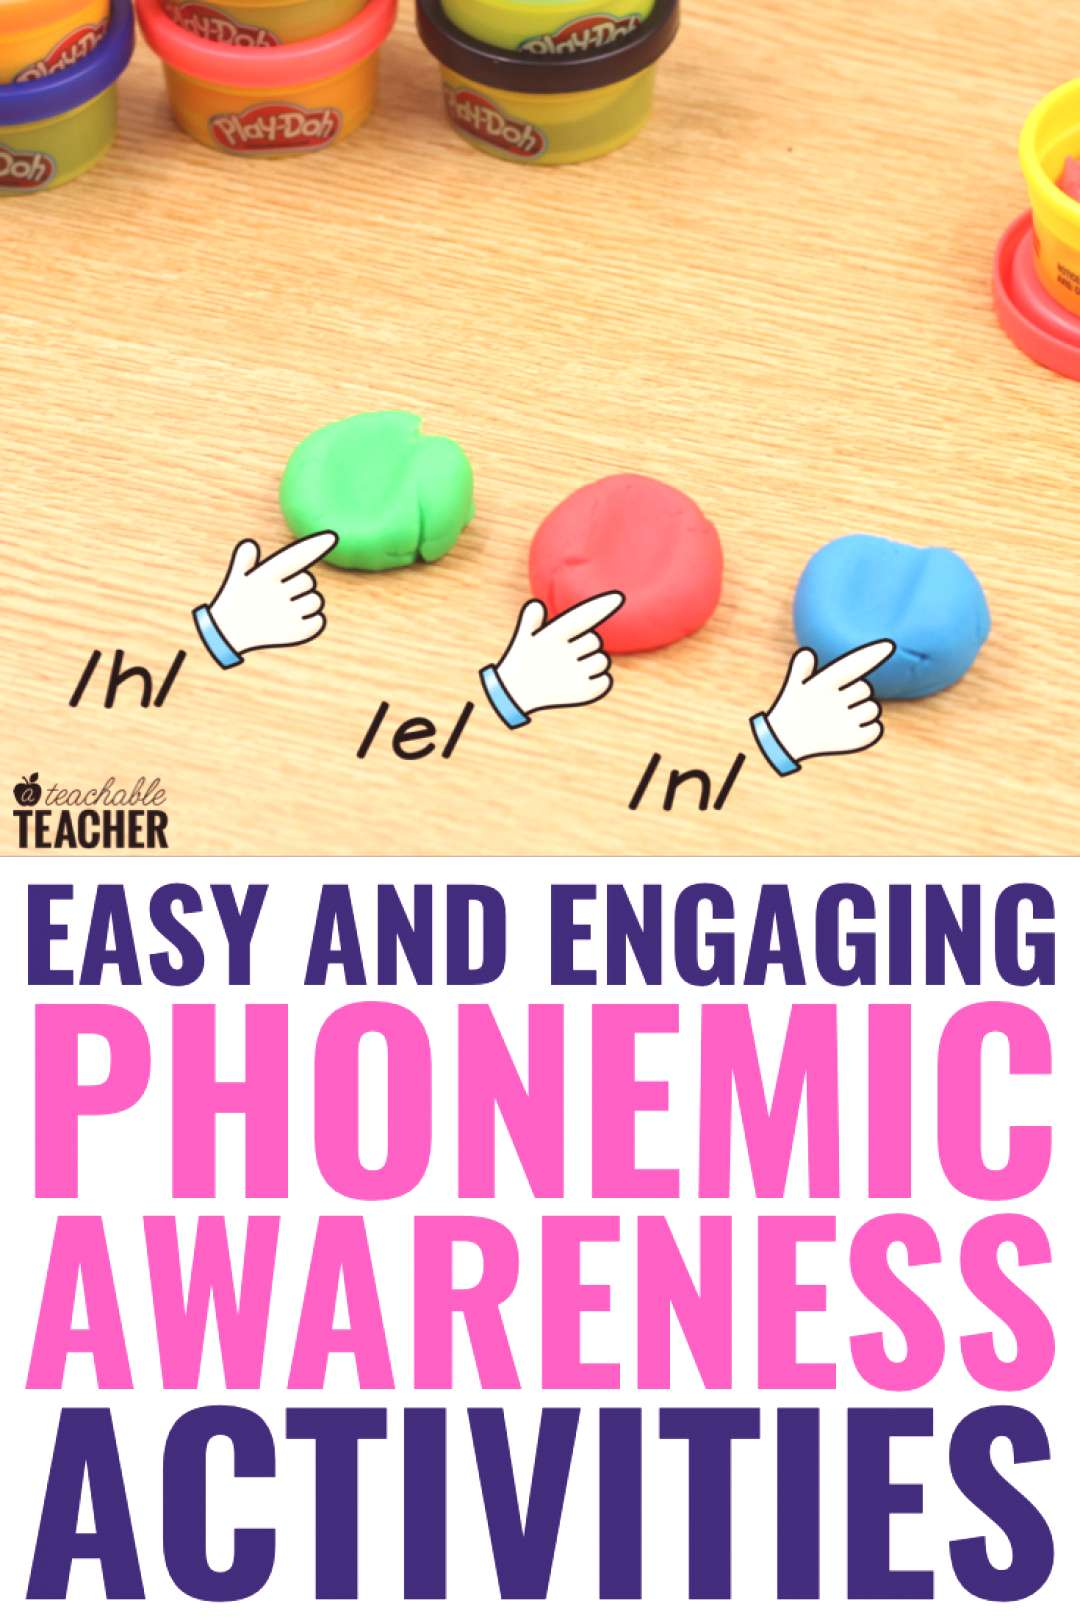 Beginning phonemic awareness activities using items you already have in your classroom! Build phone